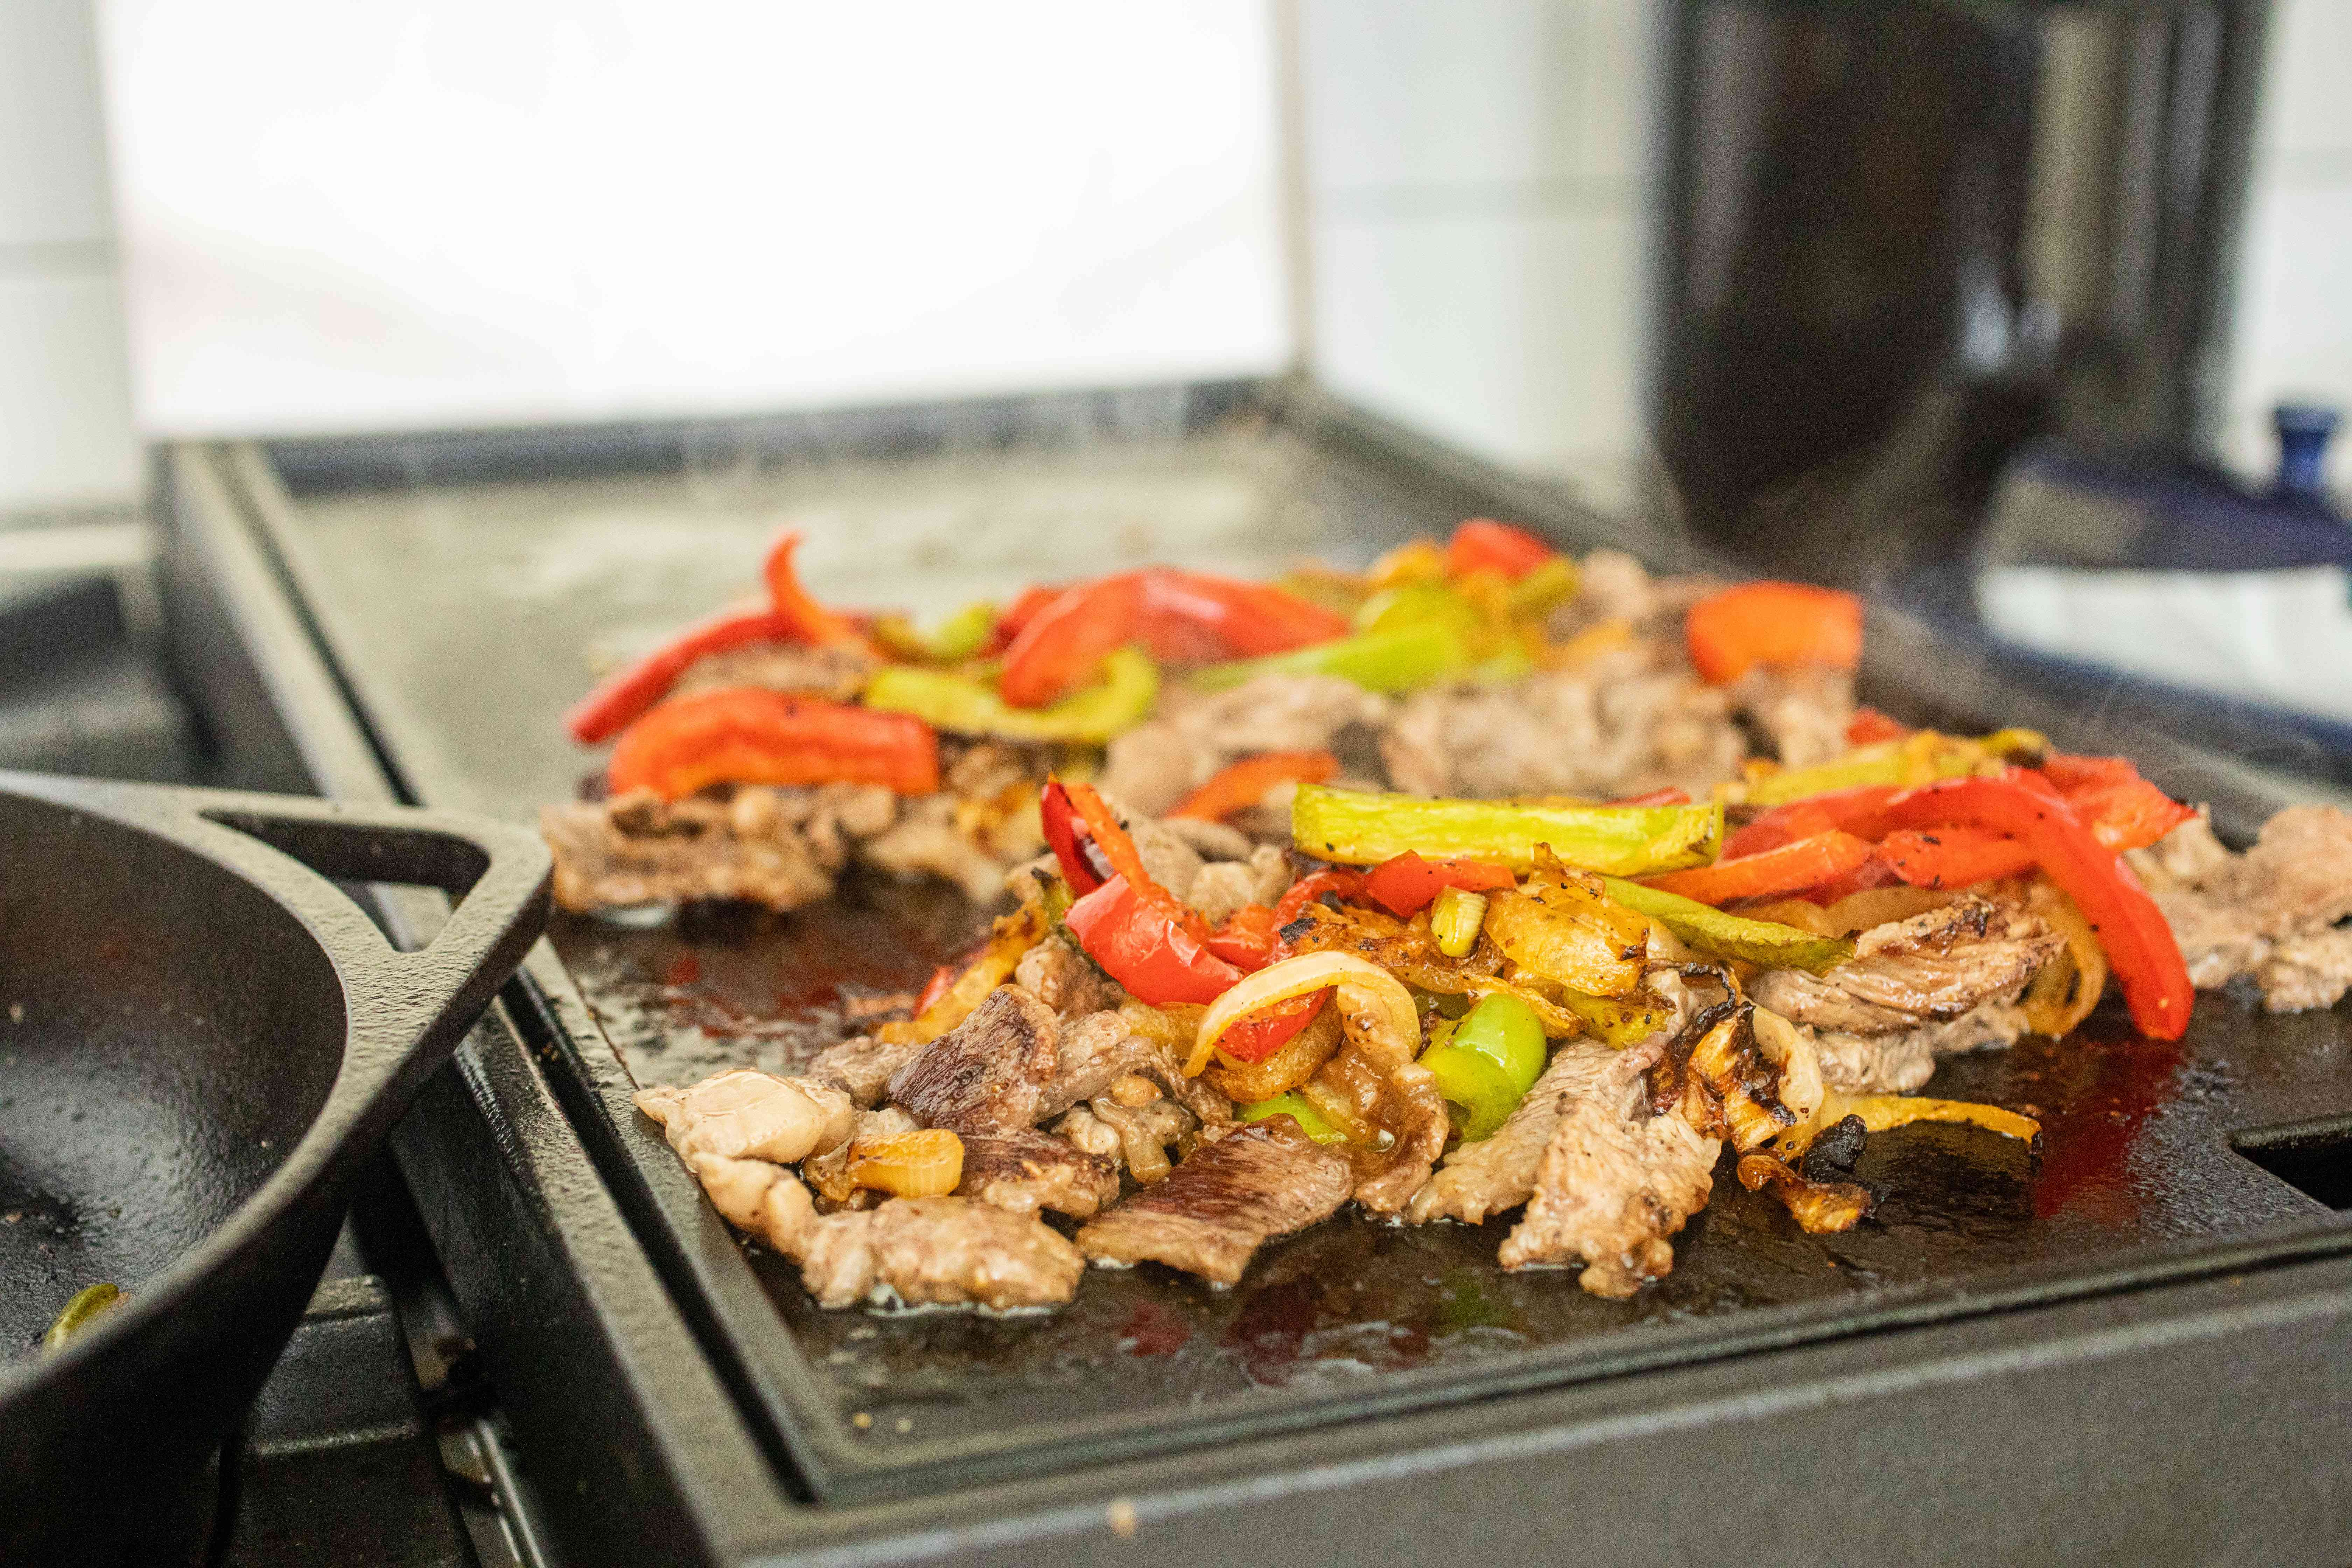 Peppers and beef cooking on a griddle to show how to make a Philly cheesesteak.